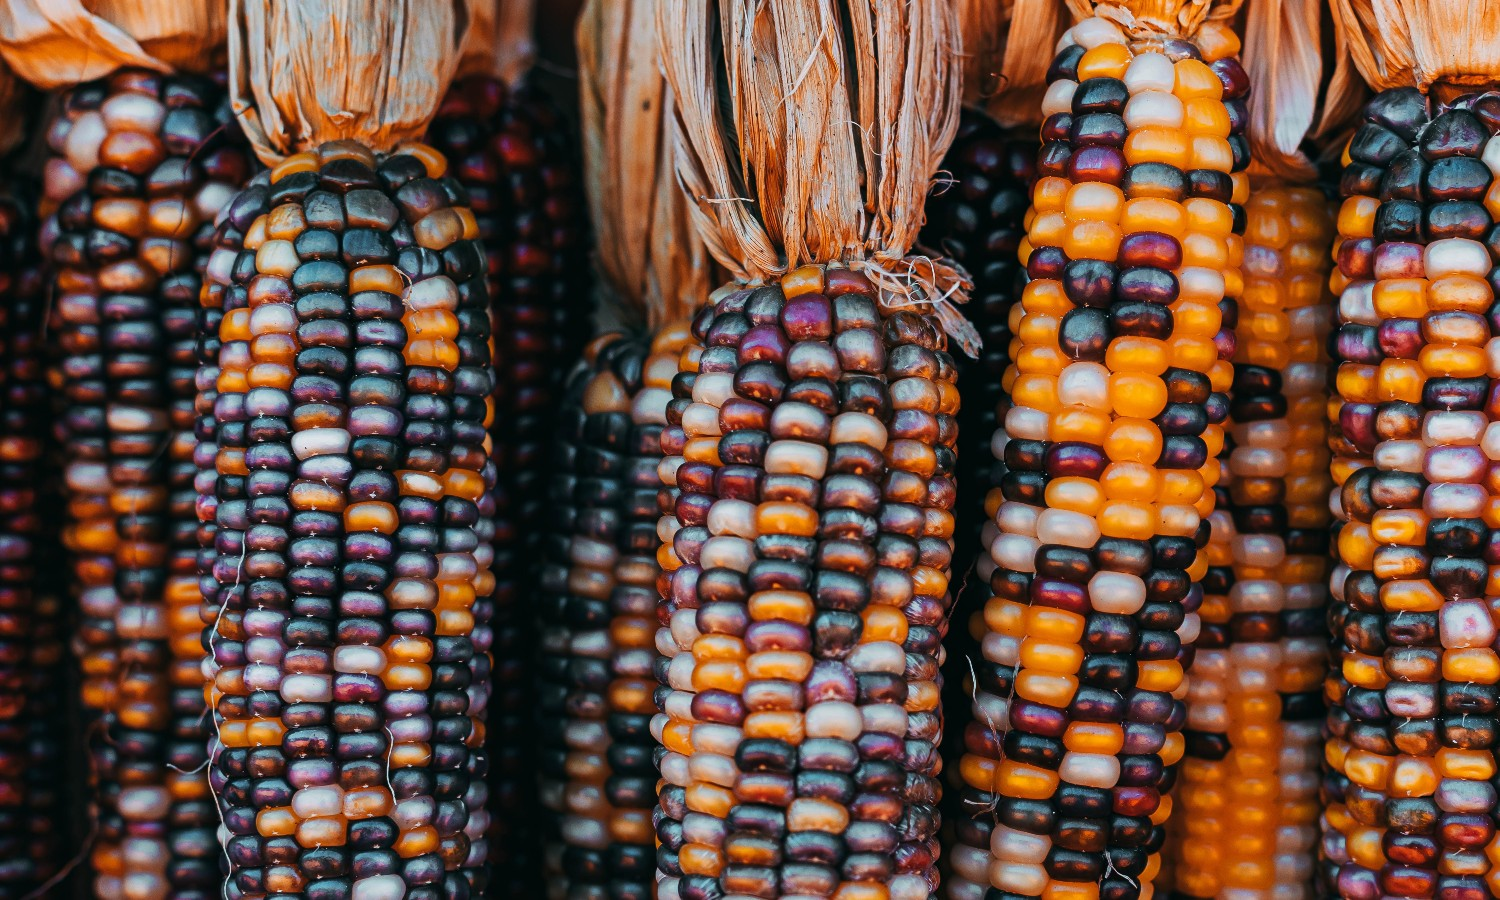 Pinole Blue, an organic blue corn company, is working to honor Mexican heritage while empowering the Rarámuri community.